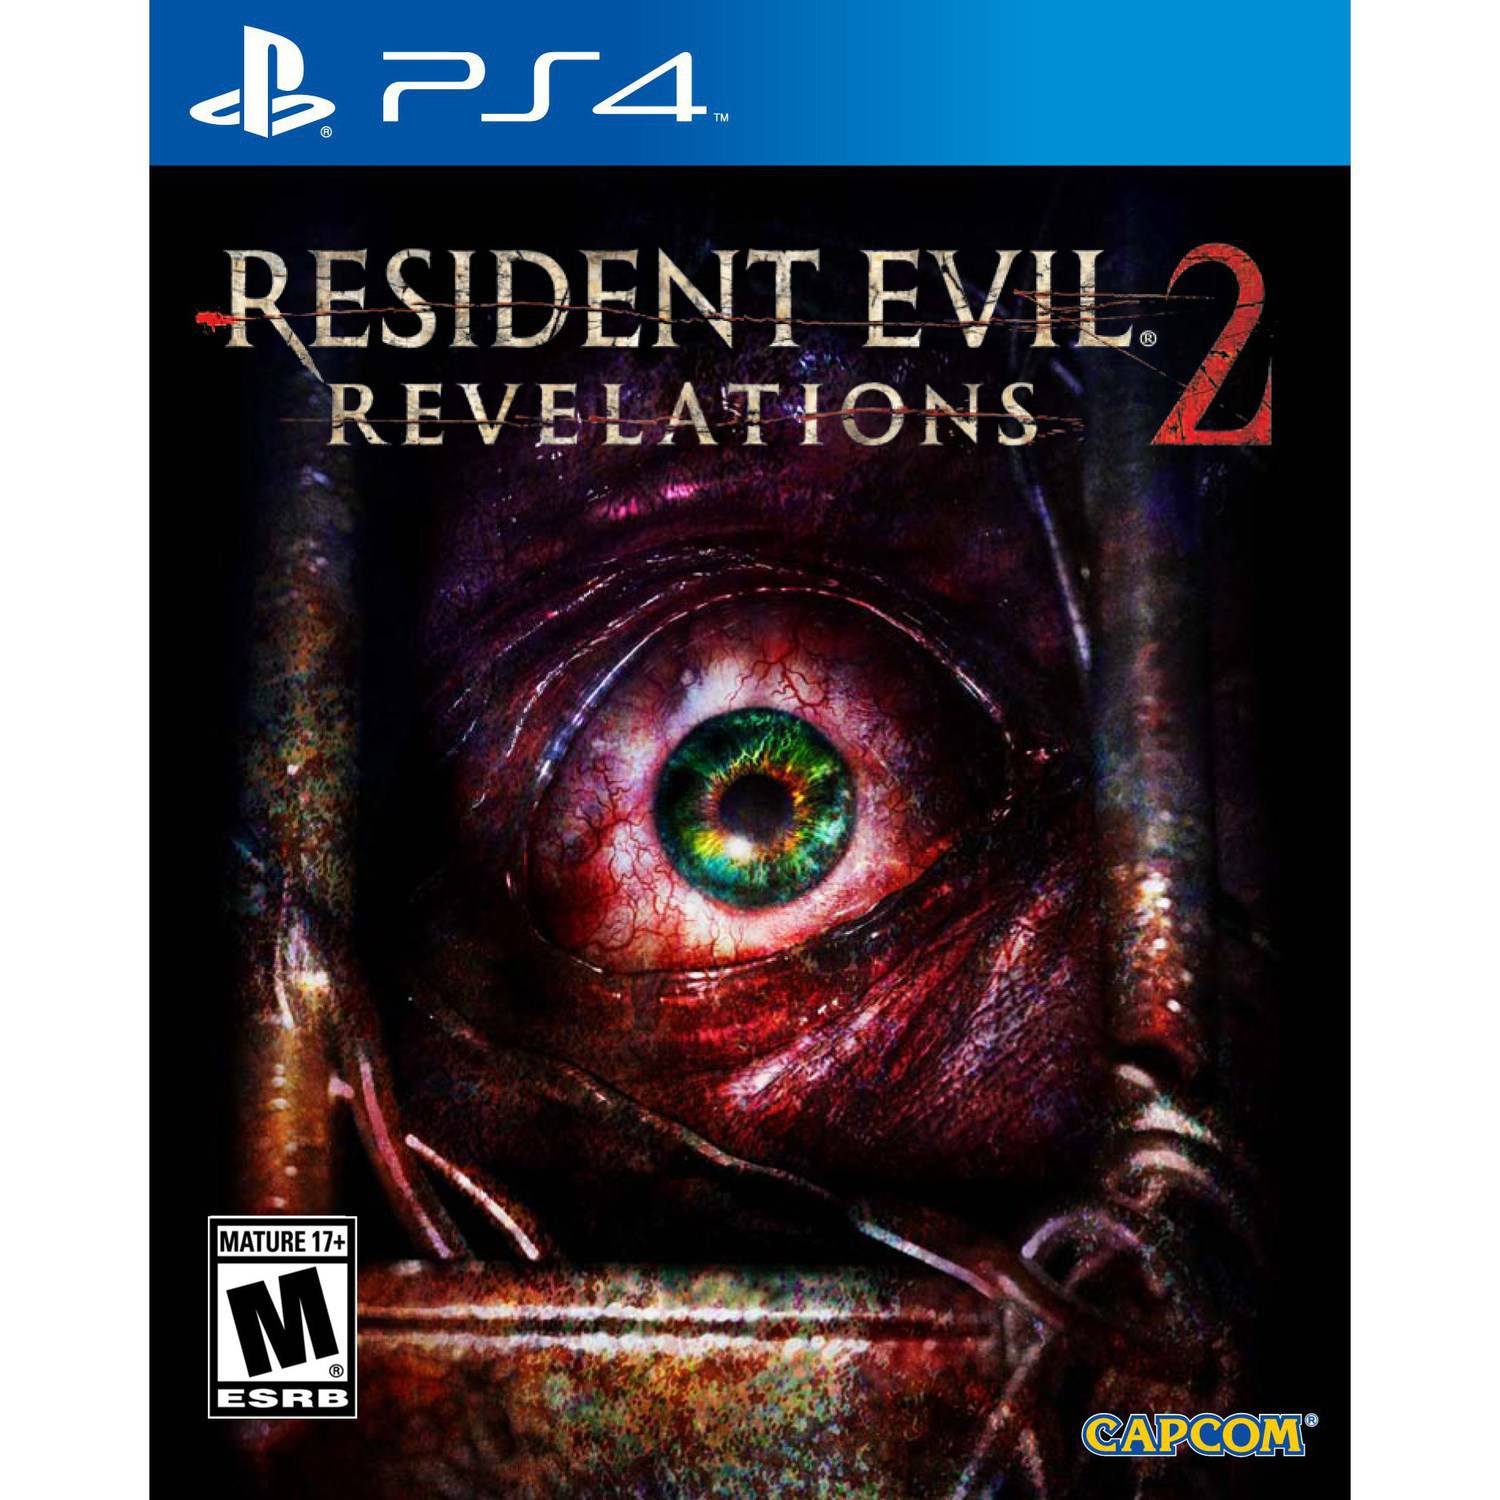 Capcom Resident Evil Revelation 2 (PS4) - Pre-Owned